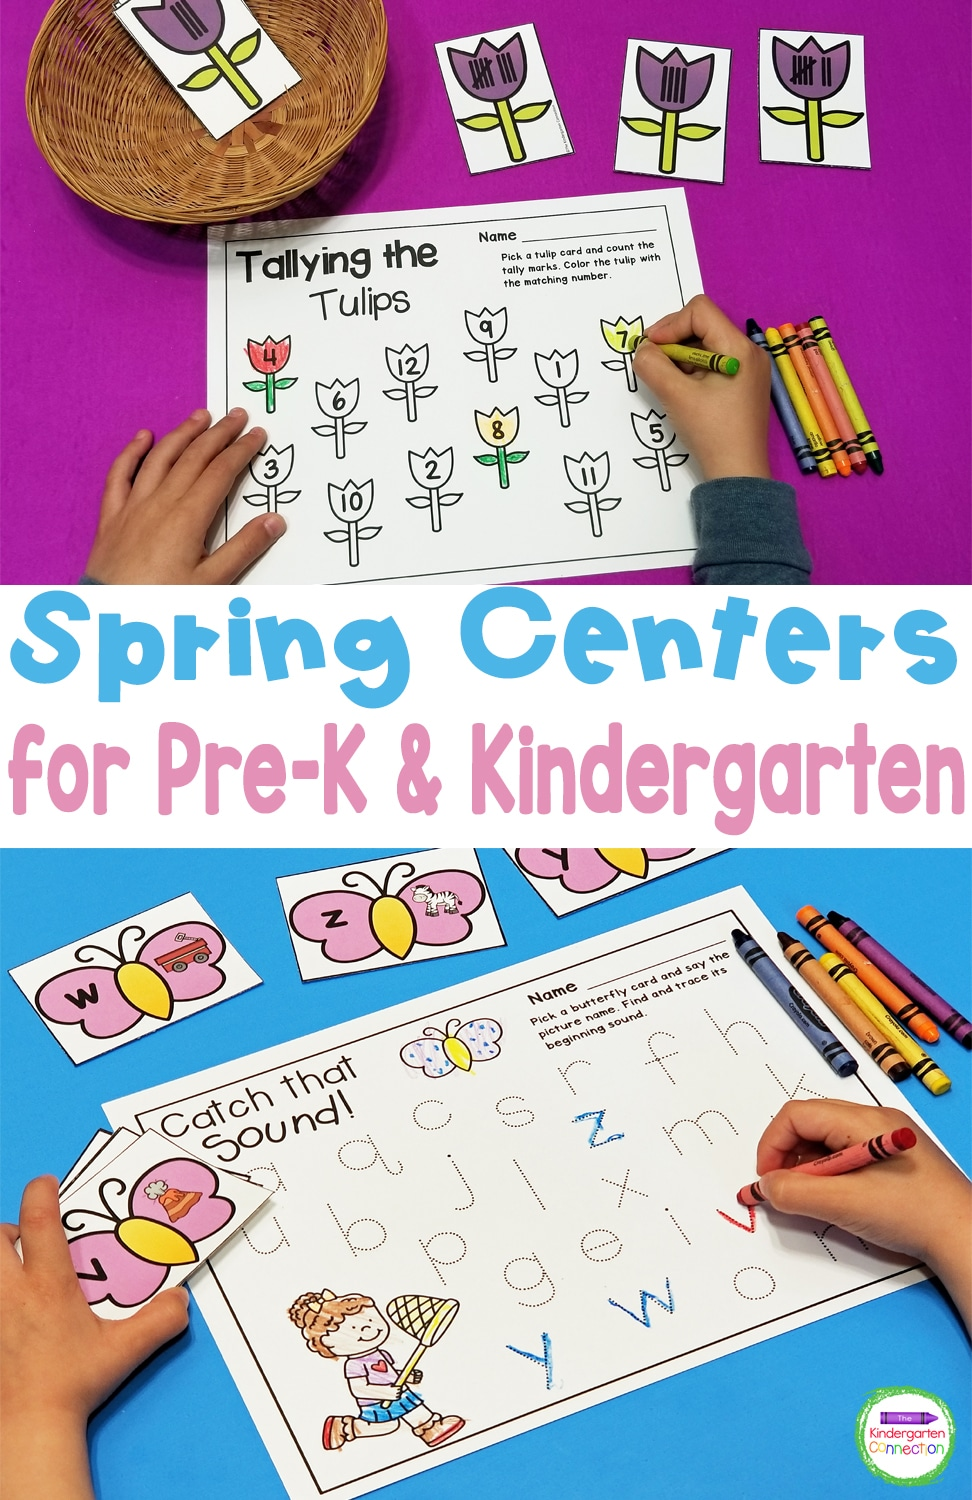 Welcome the new season and have your classroom centers planned out for you with these Spring Activities and Centers for Pre-K & Kindergarten!